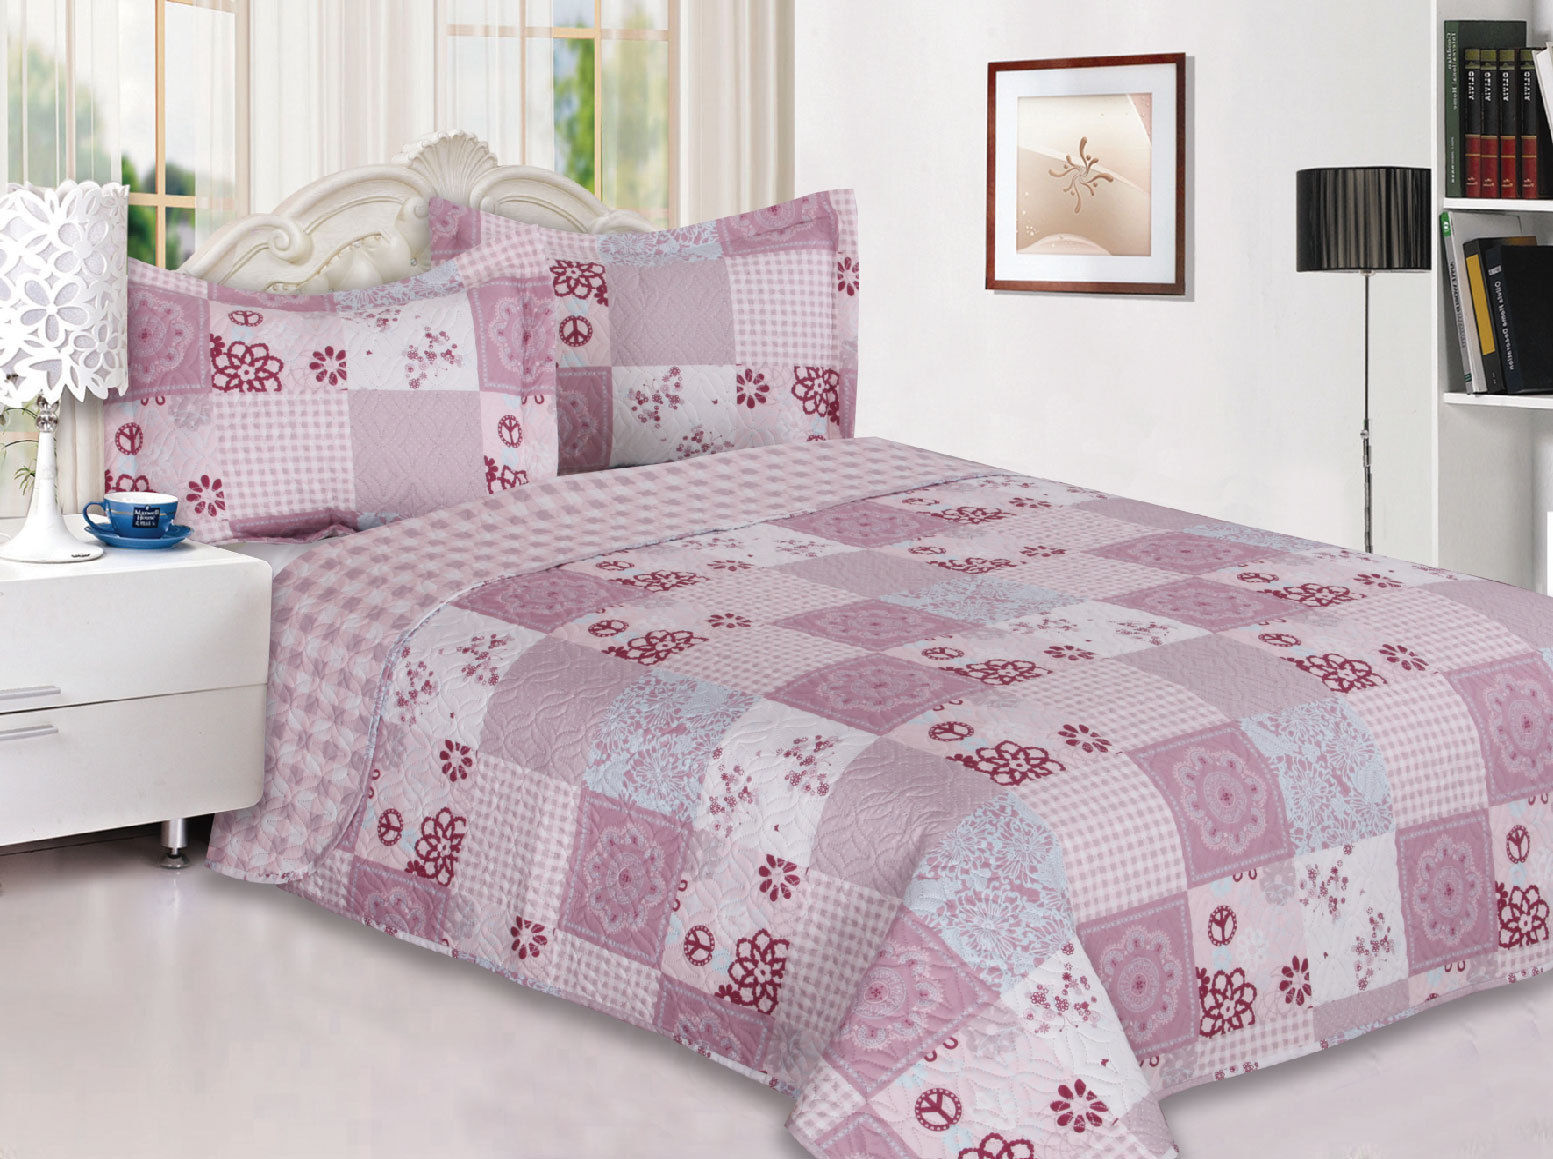 3-Piece Reversible Quilted Printed Bedspread Coverlet Pink Flower Patchwork King Size by